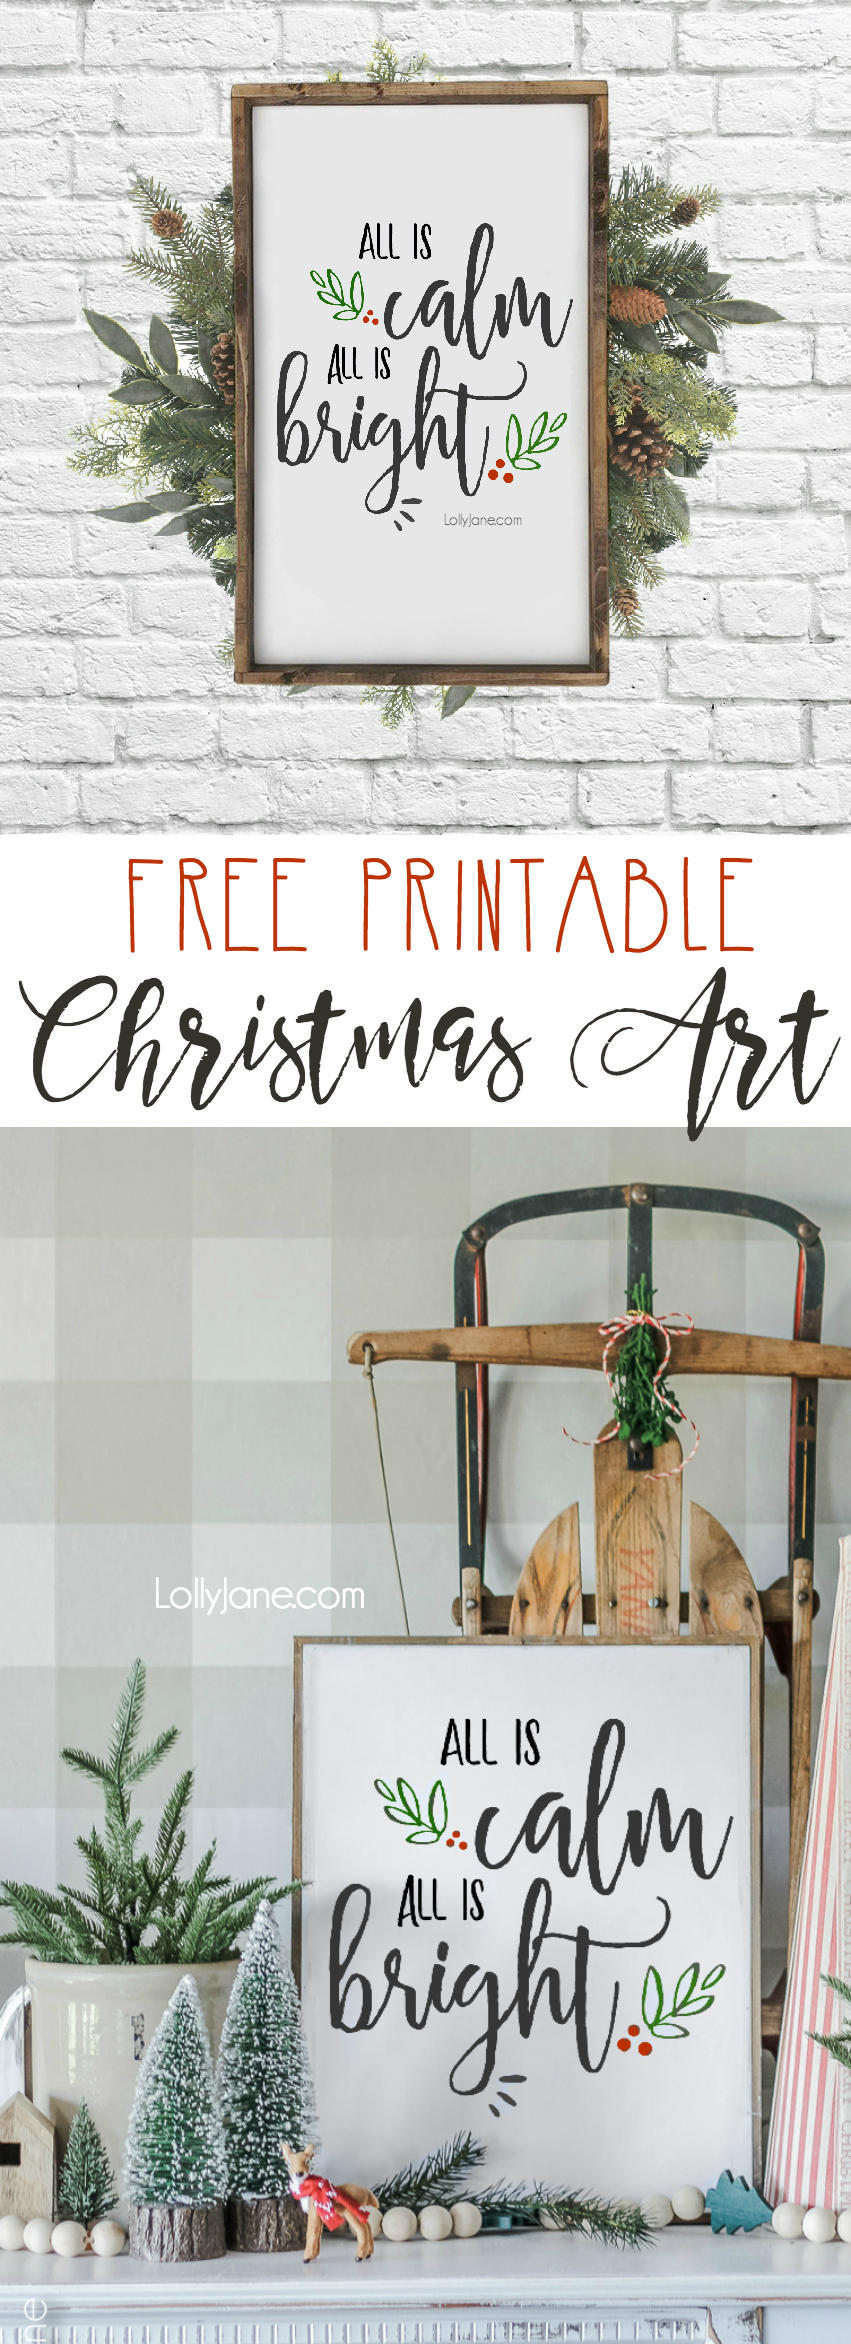 Love this pretty FREE Printable Christmas Art... use as art, a card, invitation, banner or to simply spruce up a winter/Christmas space for FREE! #freeprintable #christmasdecoration #printables #printableart #christmas